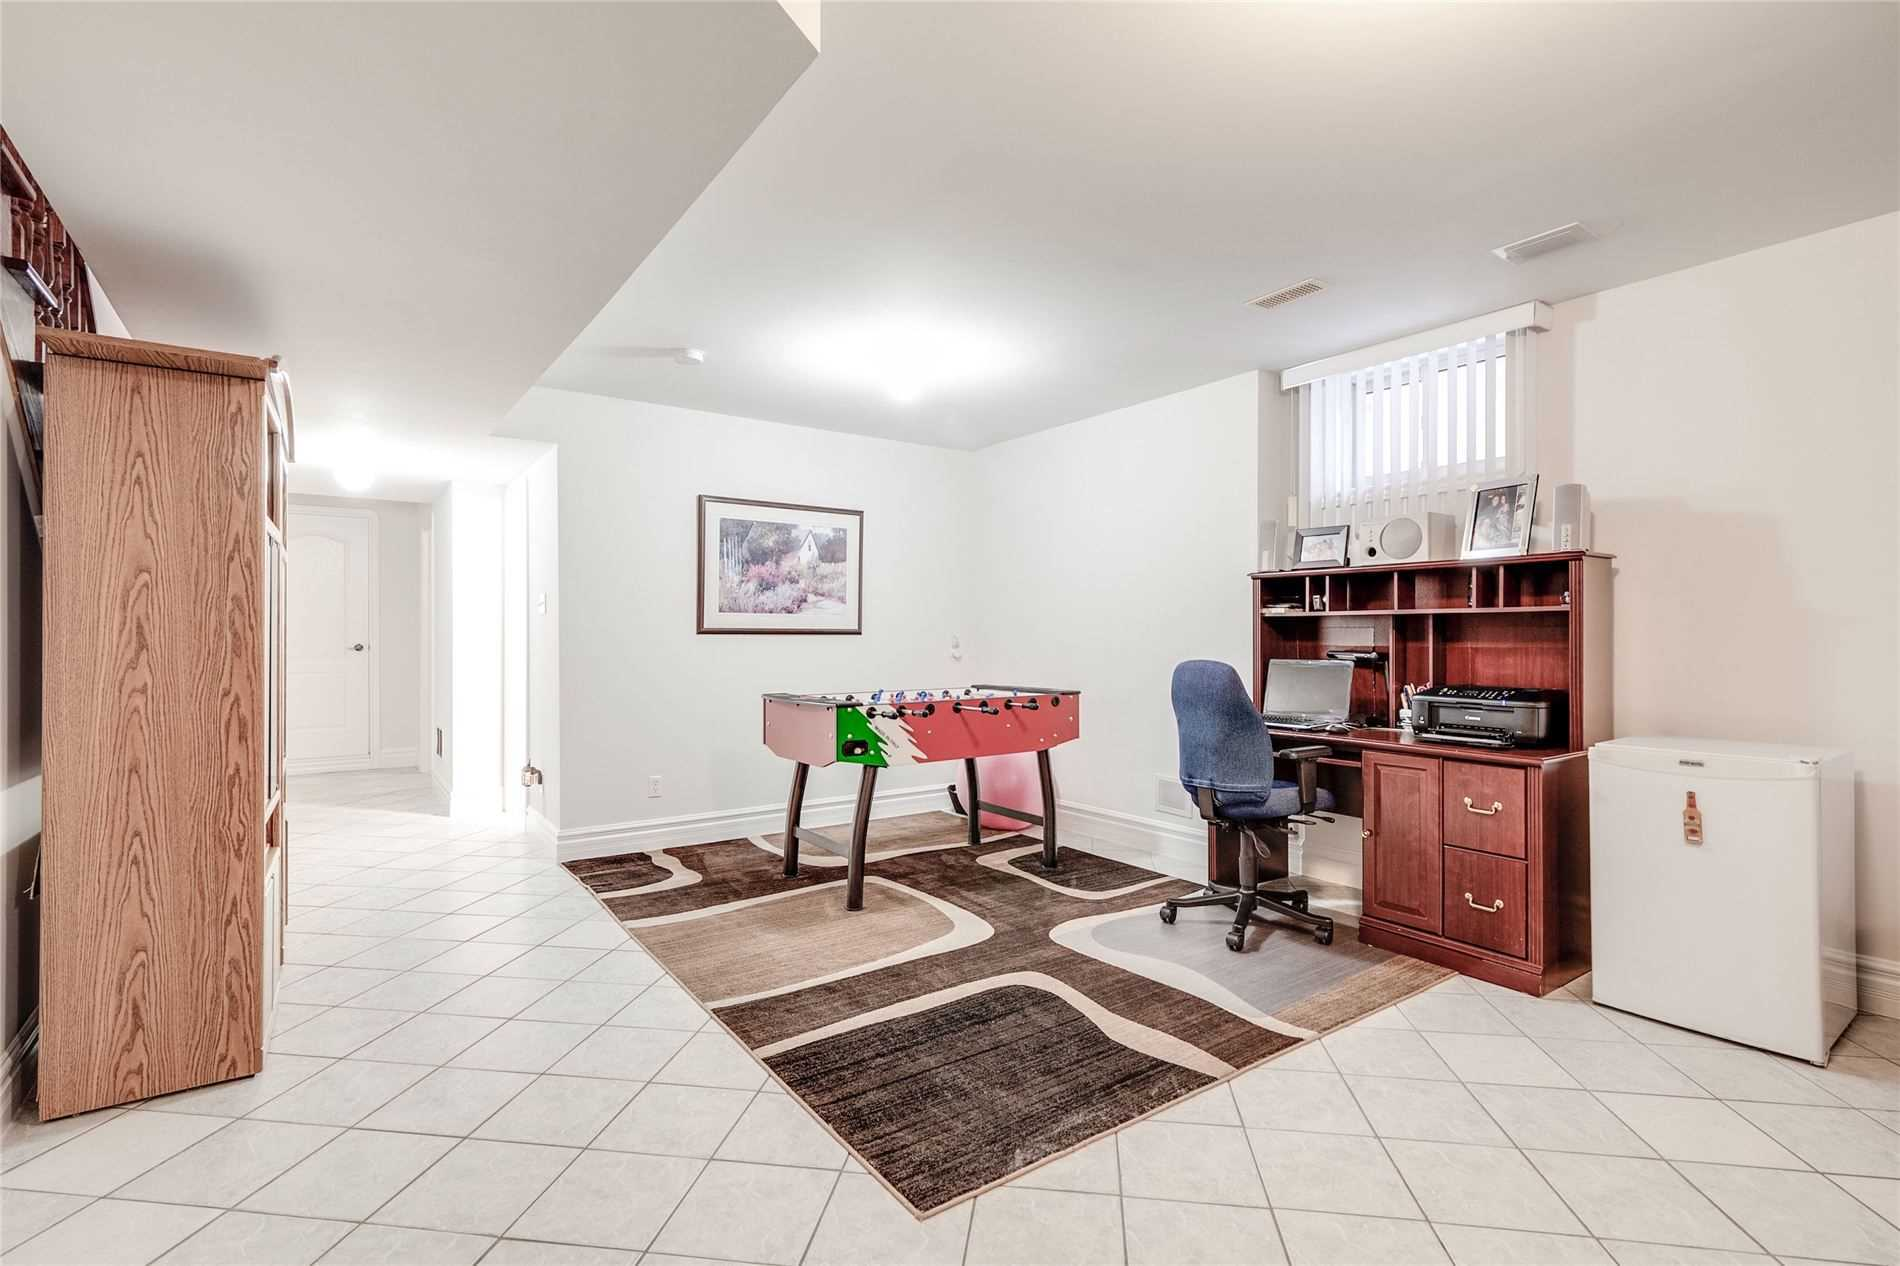 68 Sellers Ave (9)